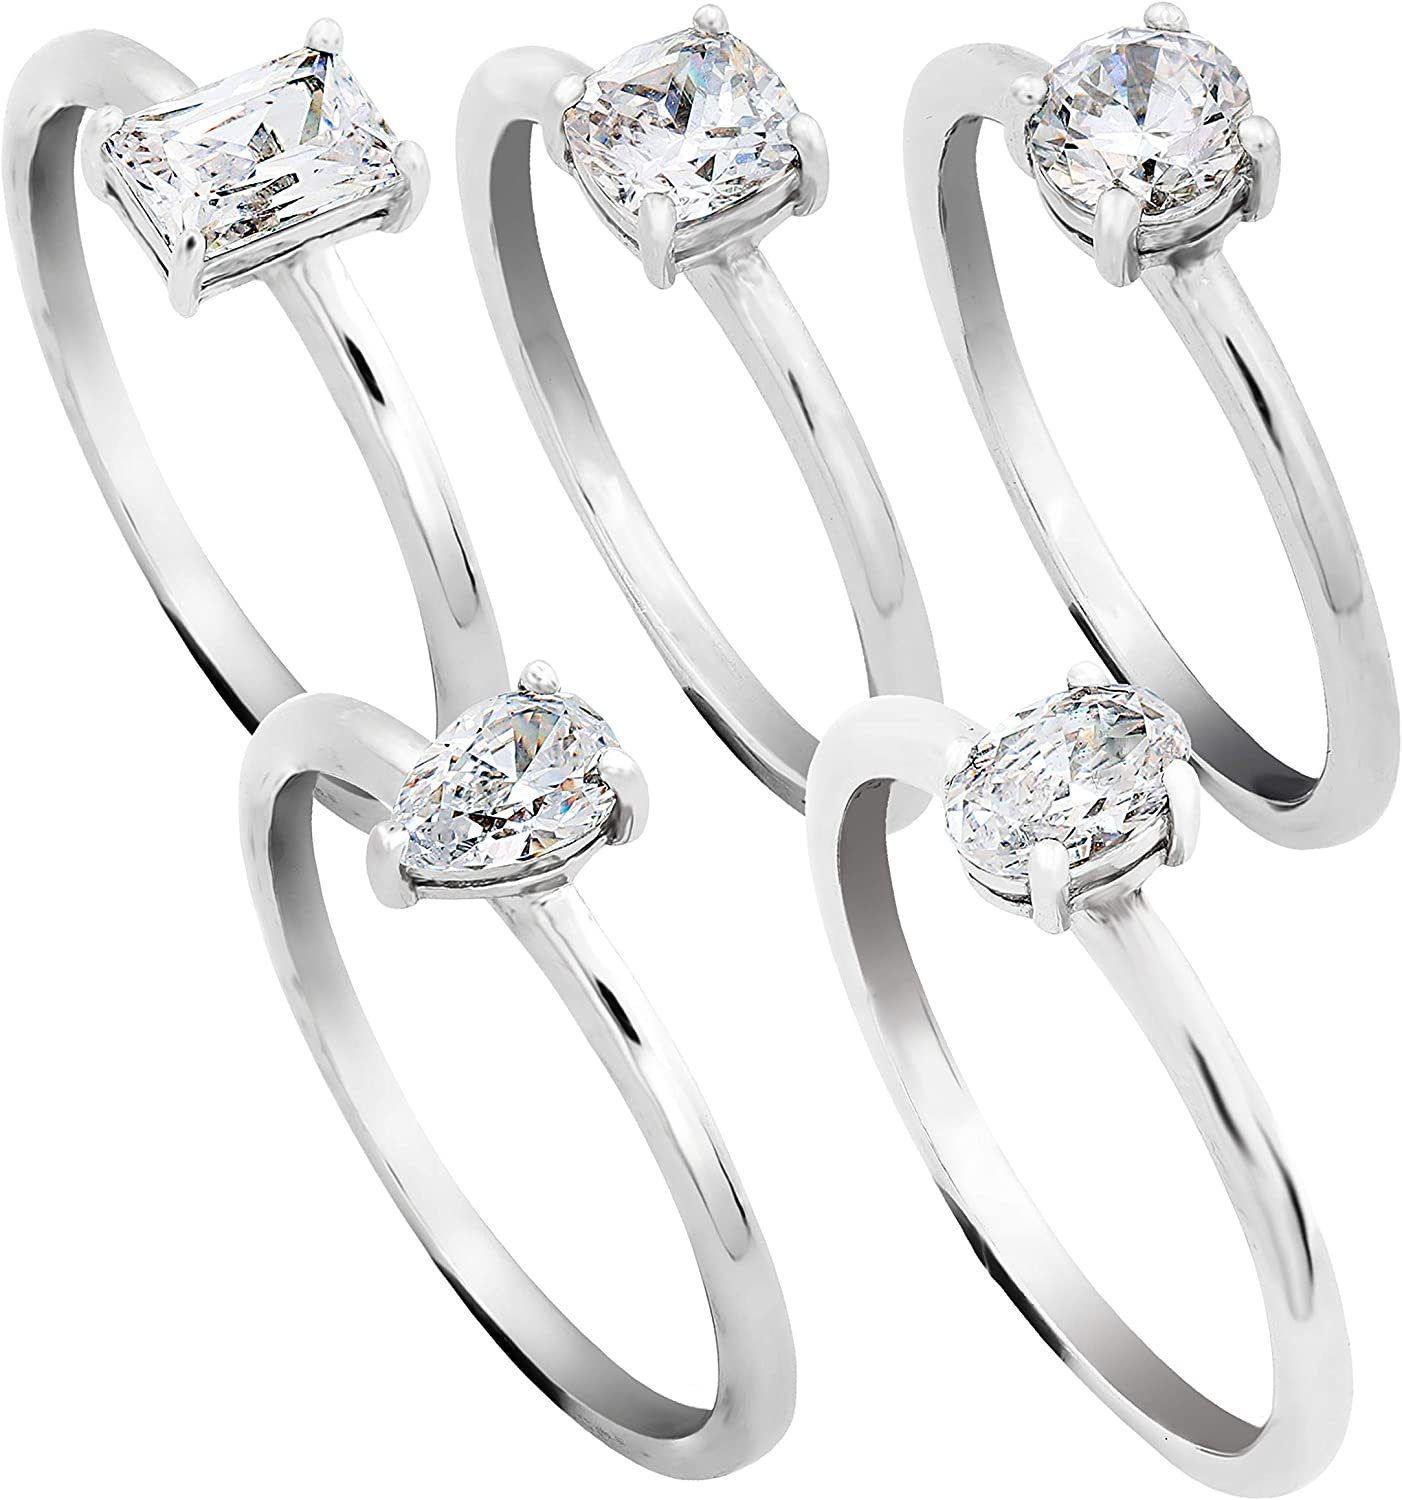 PAZ Creations .925 Sterling Silver Cubic Zirconia 5 Stack Ring Set